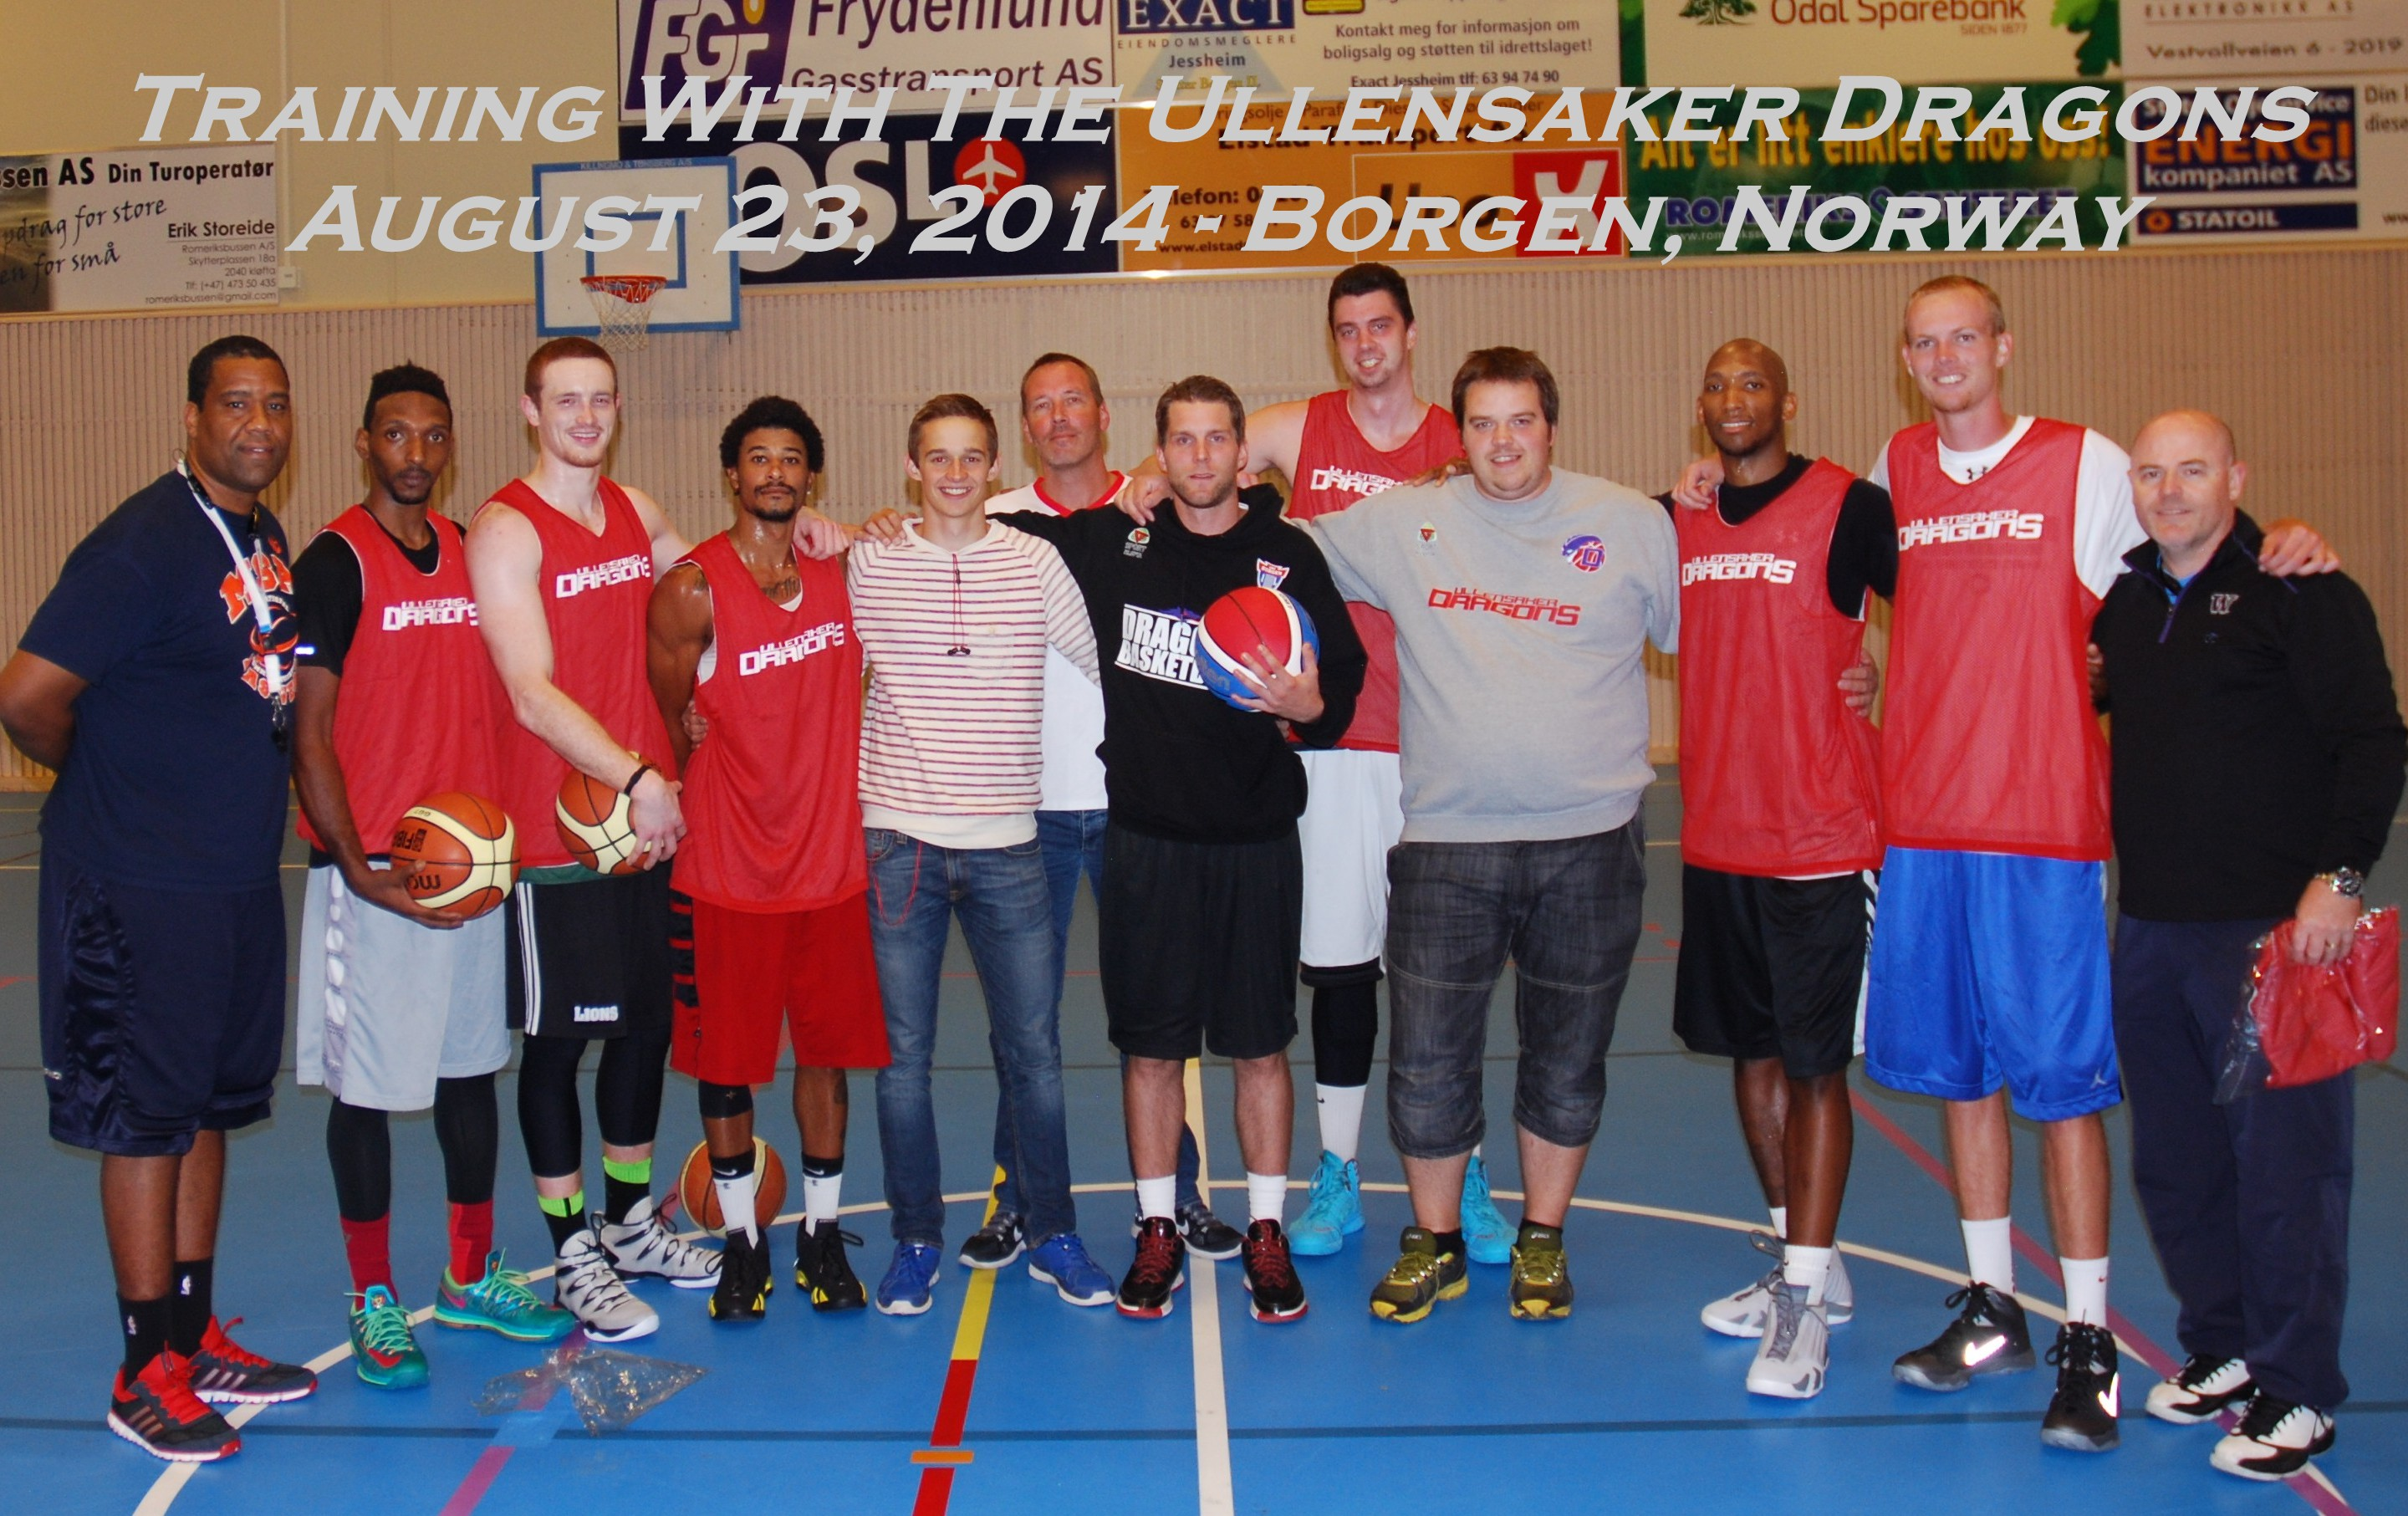 Training With The Ullensaker Dragons